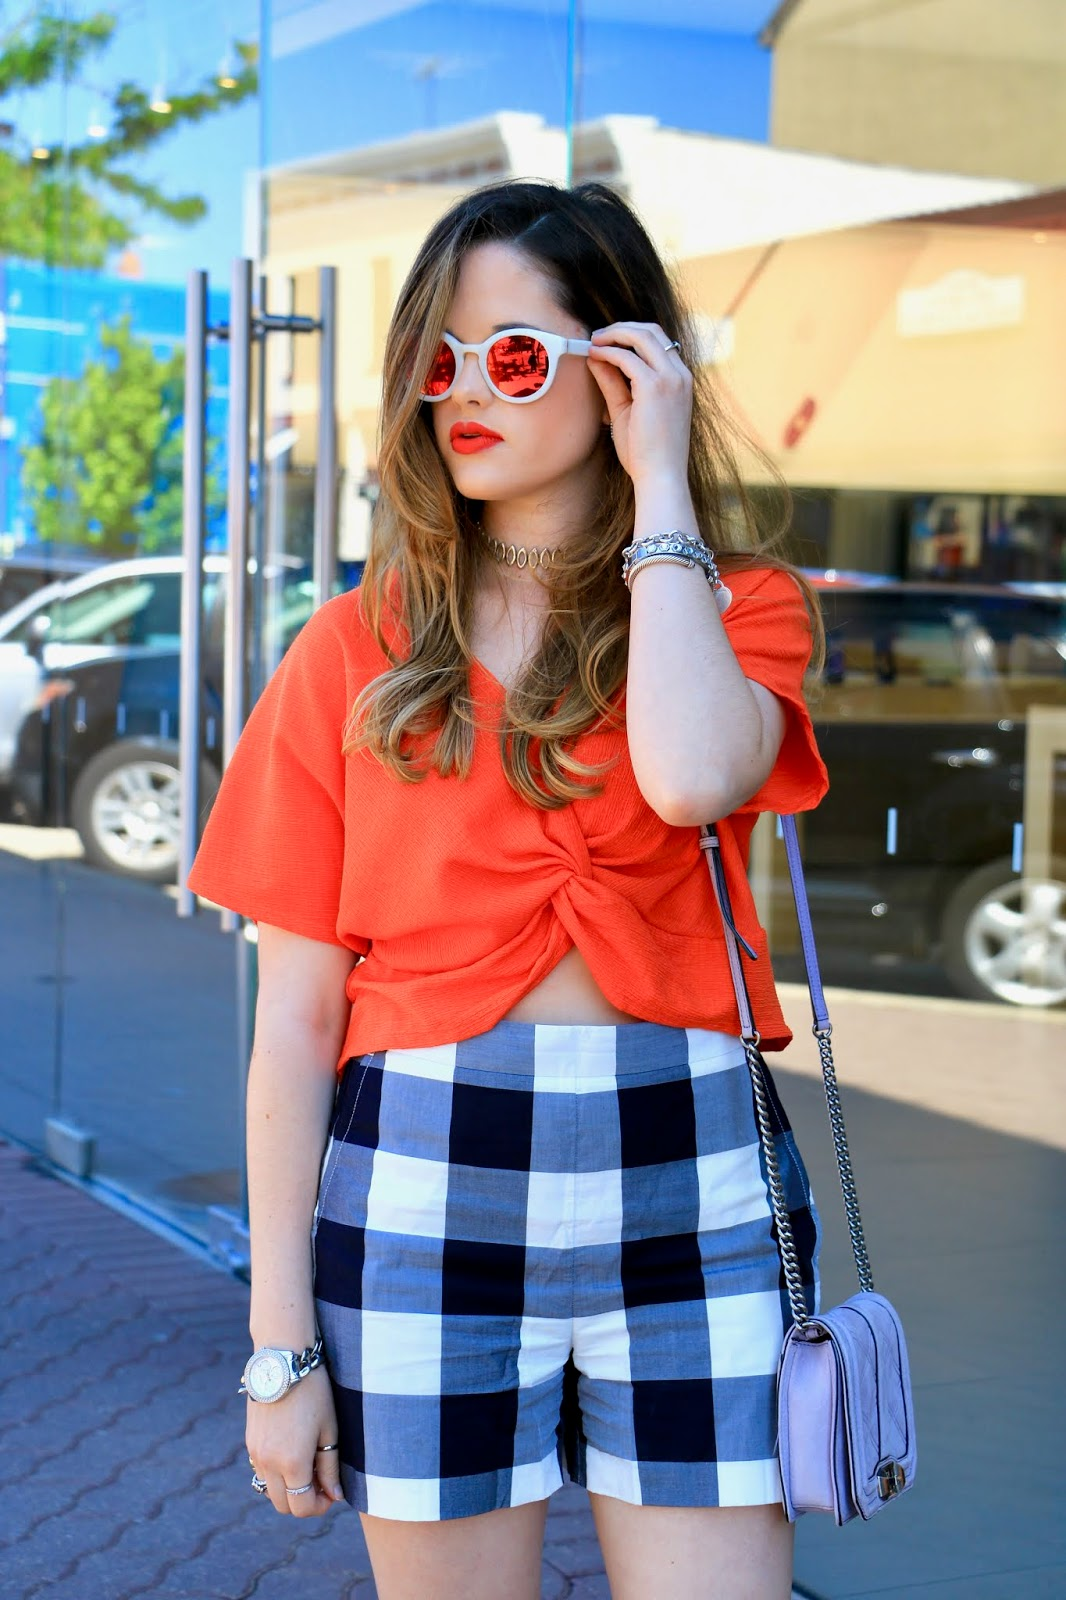 Nyc fashion blogger of Kat's Fashion Fix, Kathleen Harper, wearing Urban Decay orange lipstick